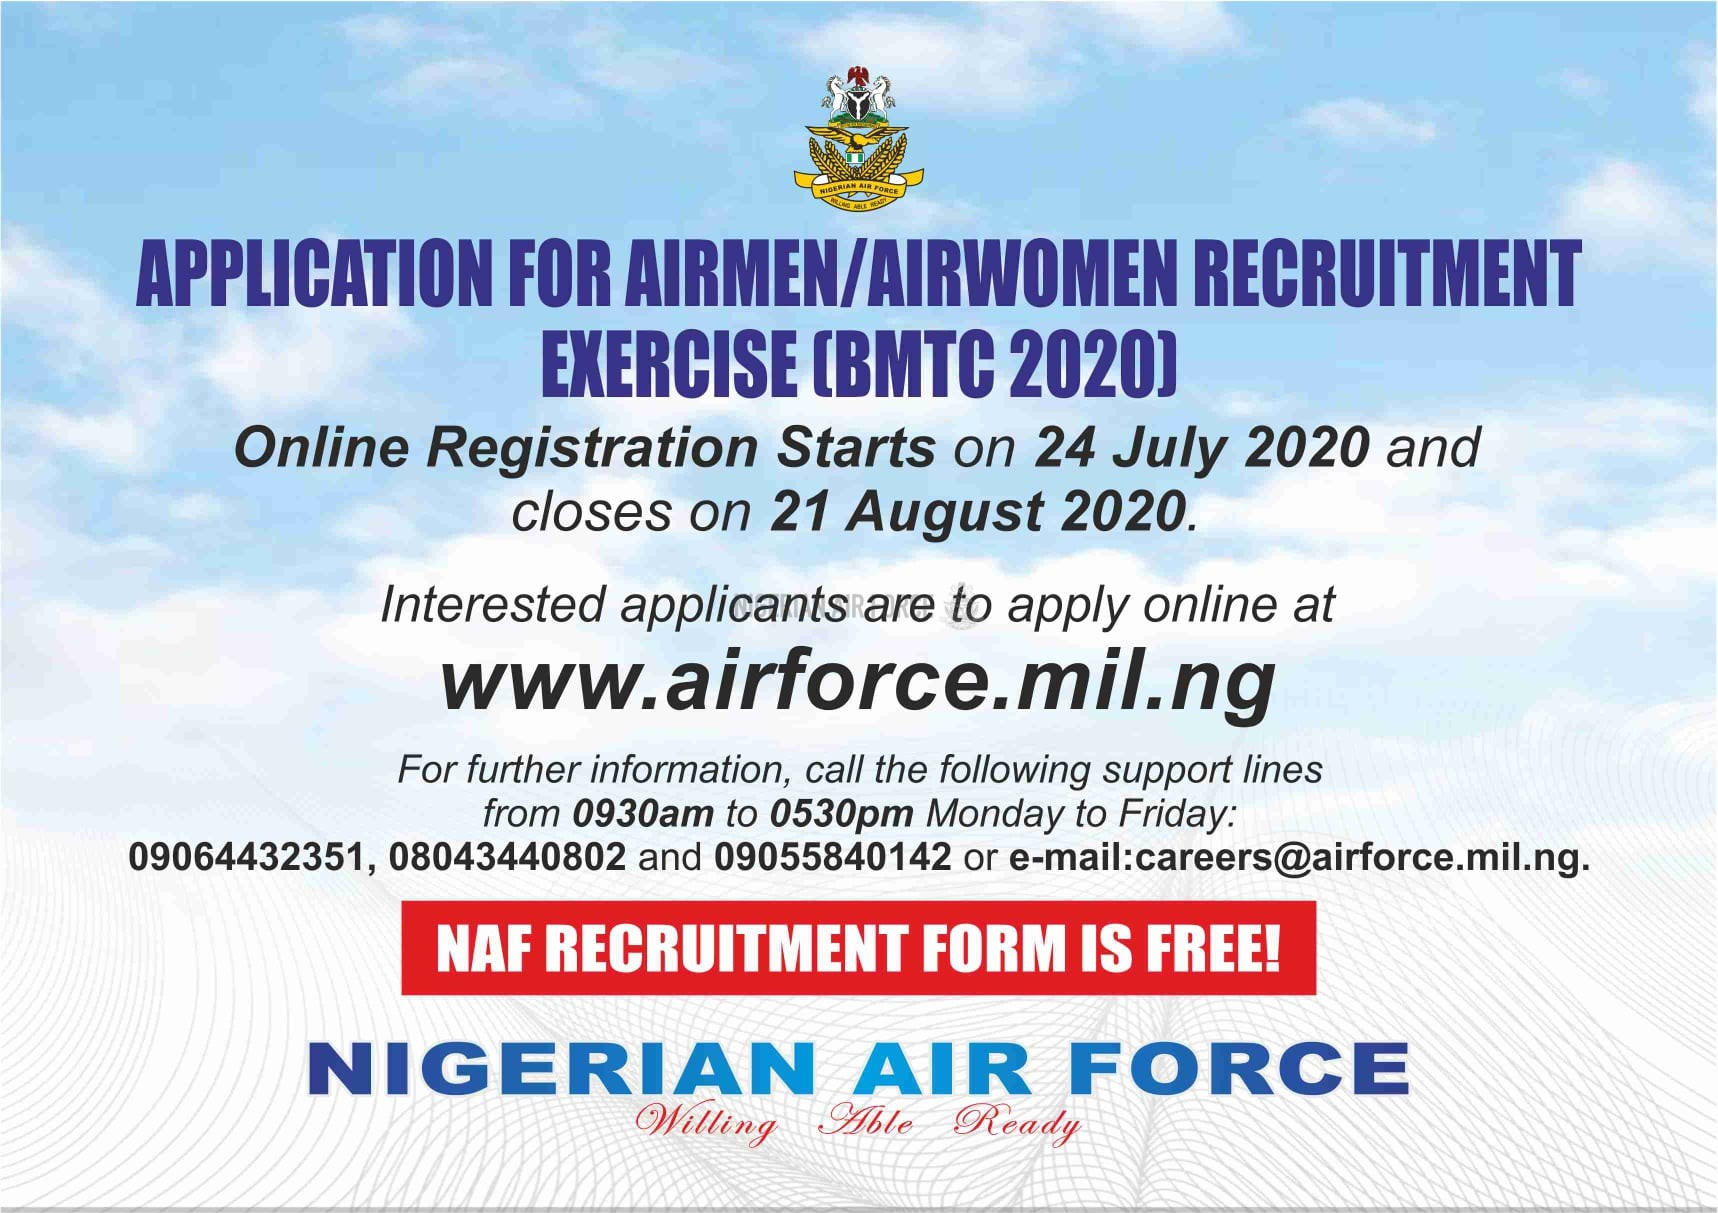 NAF ONLINE RECRUITMENT TO COMMENCE 24 JULY 2020